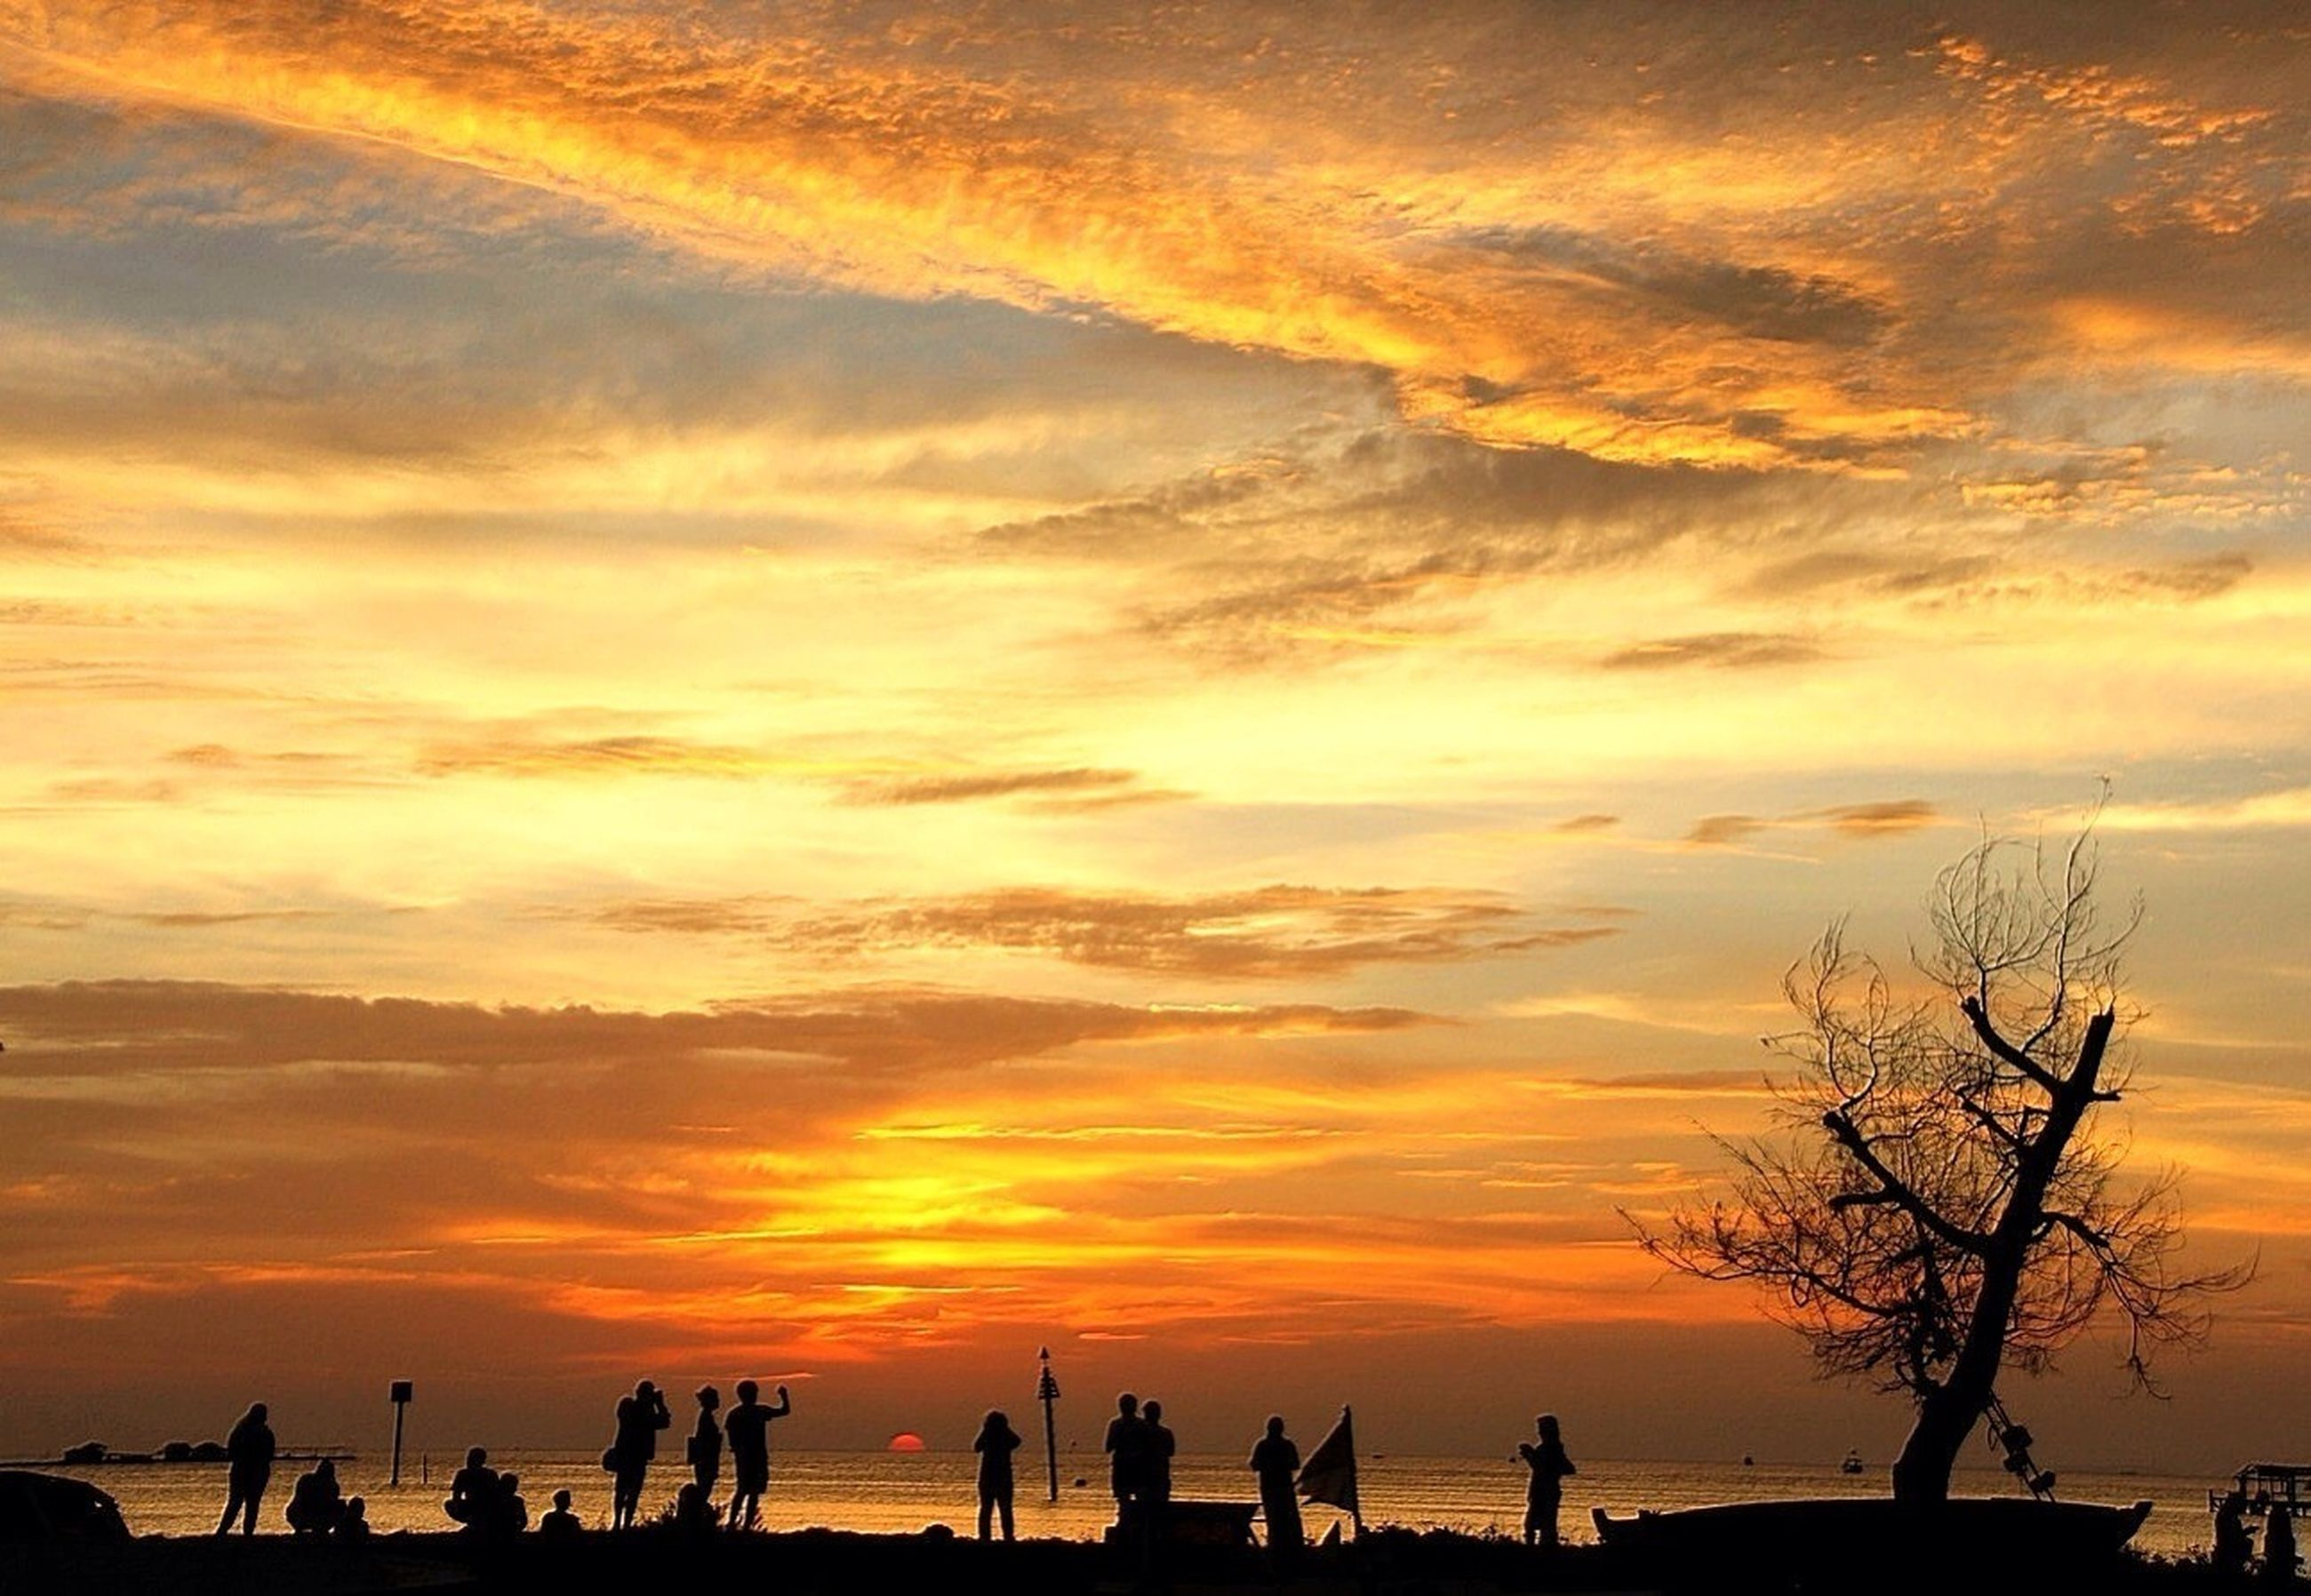 sunset, sky, orange color, silhouette, sea, scenics, beauty in nature, cloud - sky, beach, water, tranquility, tranquil scene, horizon over water, nature, idyllic, large group of people, vacations, cloud, dramatic sky